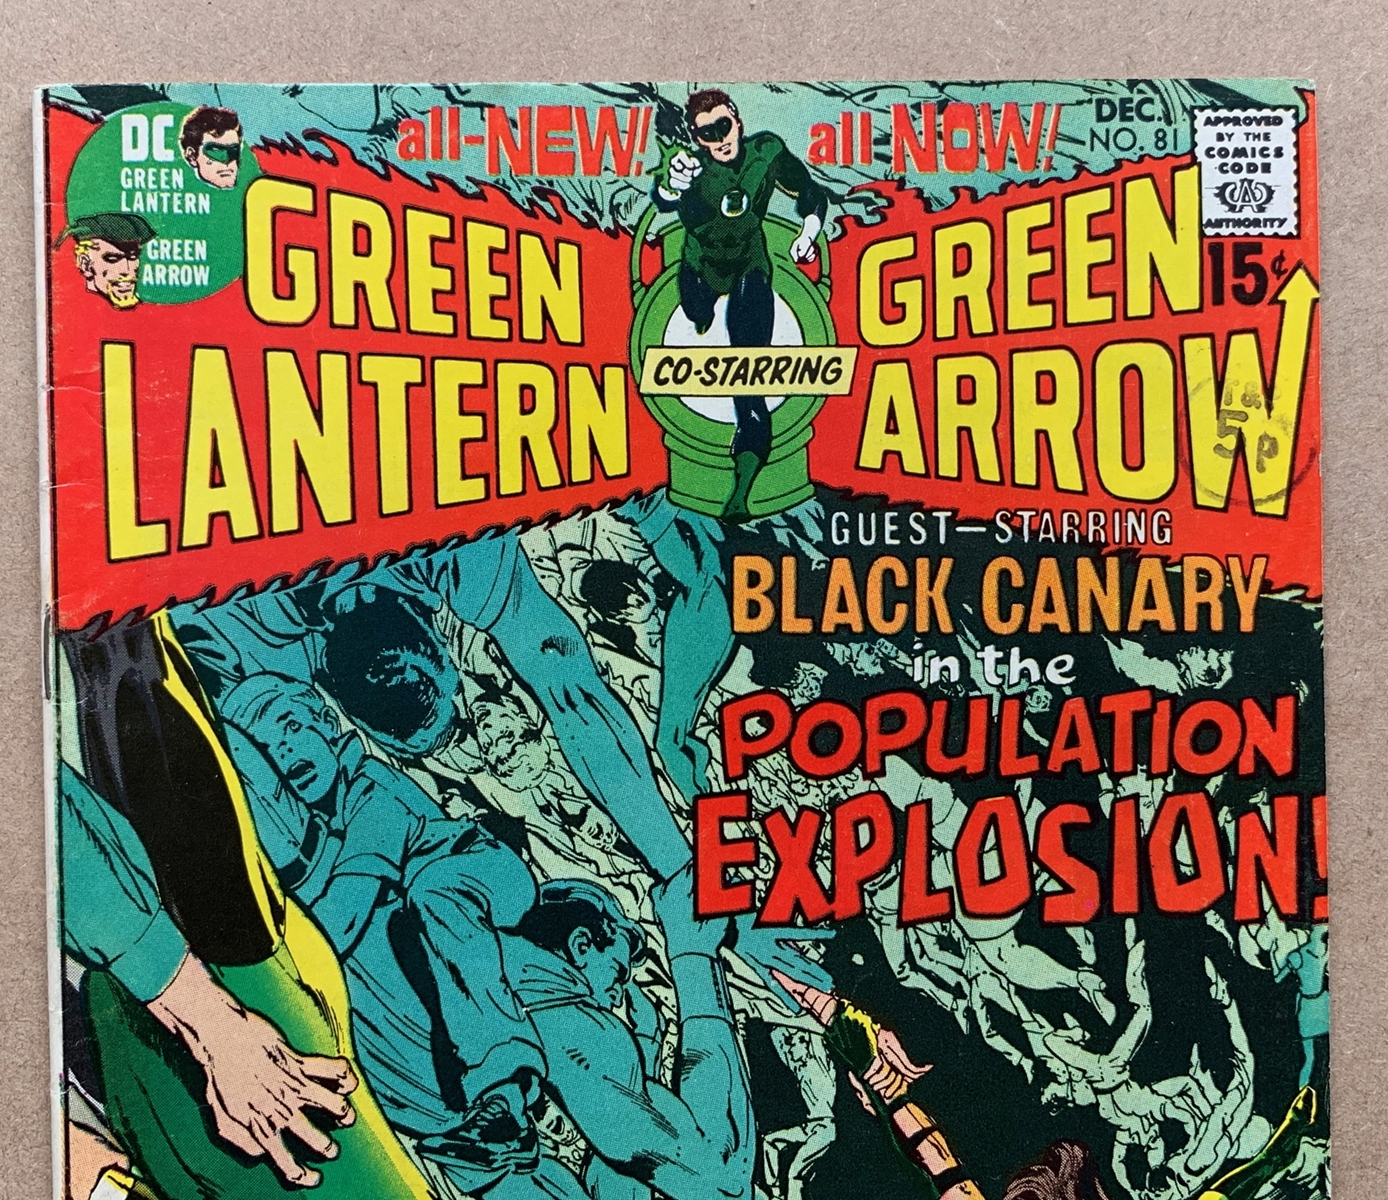 Lot 2121 - GREEN LANTERN #81 (1970 - DC) VFN (Cents Copy/Pence Stamp) - Black Canary guest-stars. Neal Adams